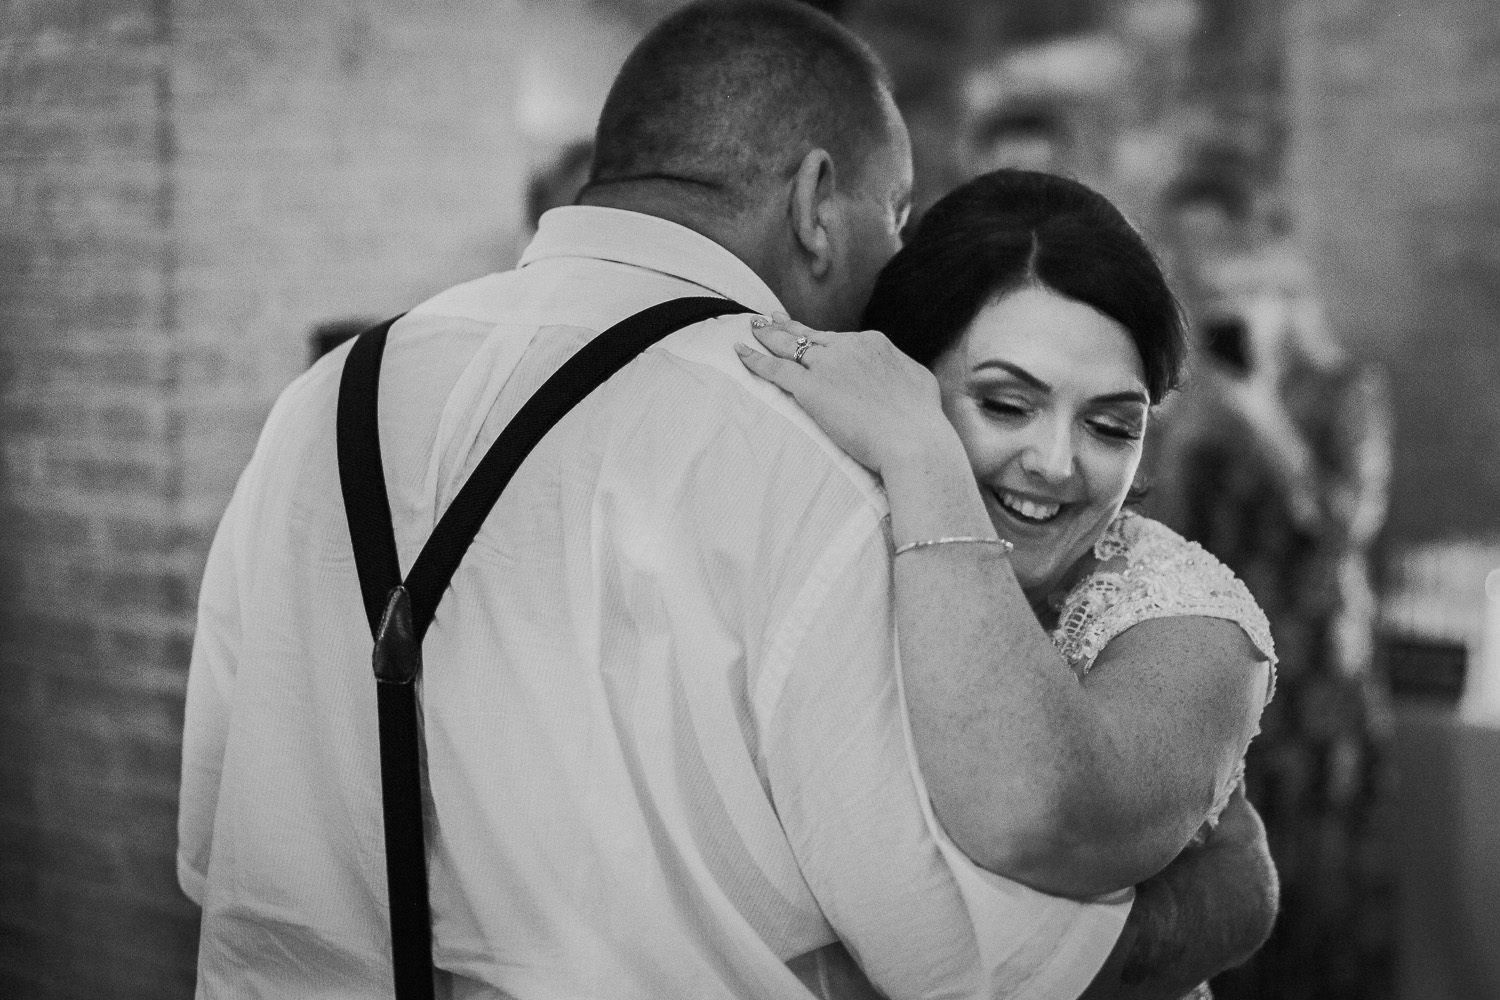 First dance with dad Castello di bibbione wedding photography Tuscany